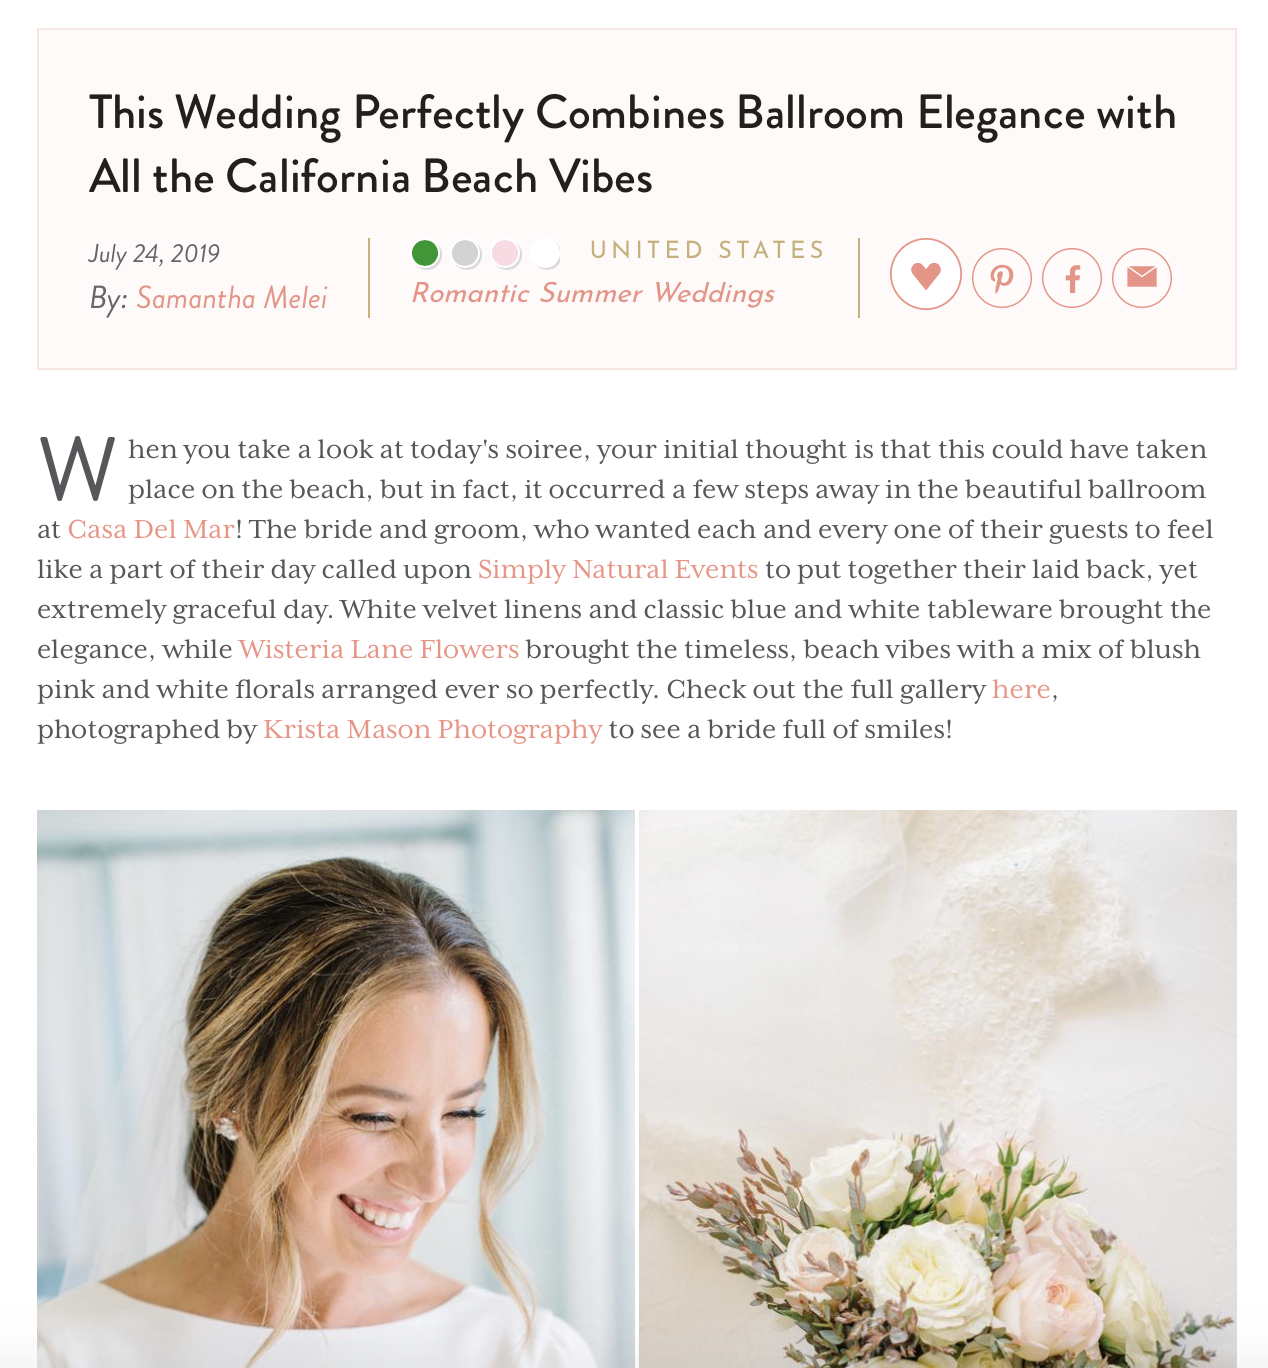 Kate + Nick's wedding on Style Me Pretty